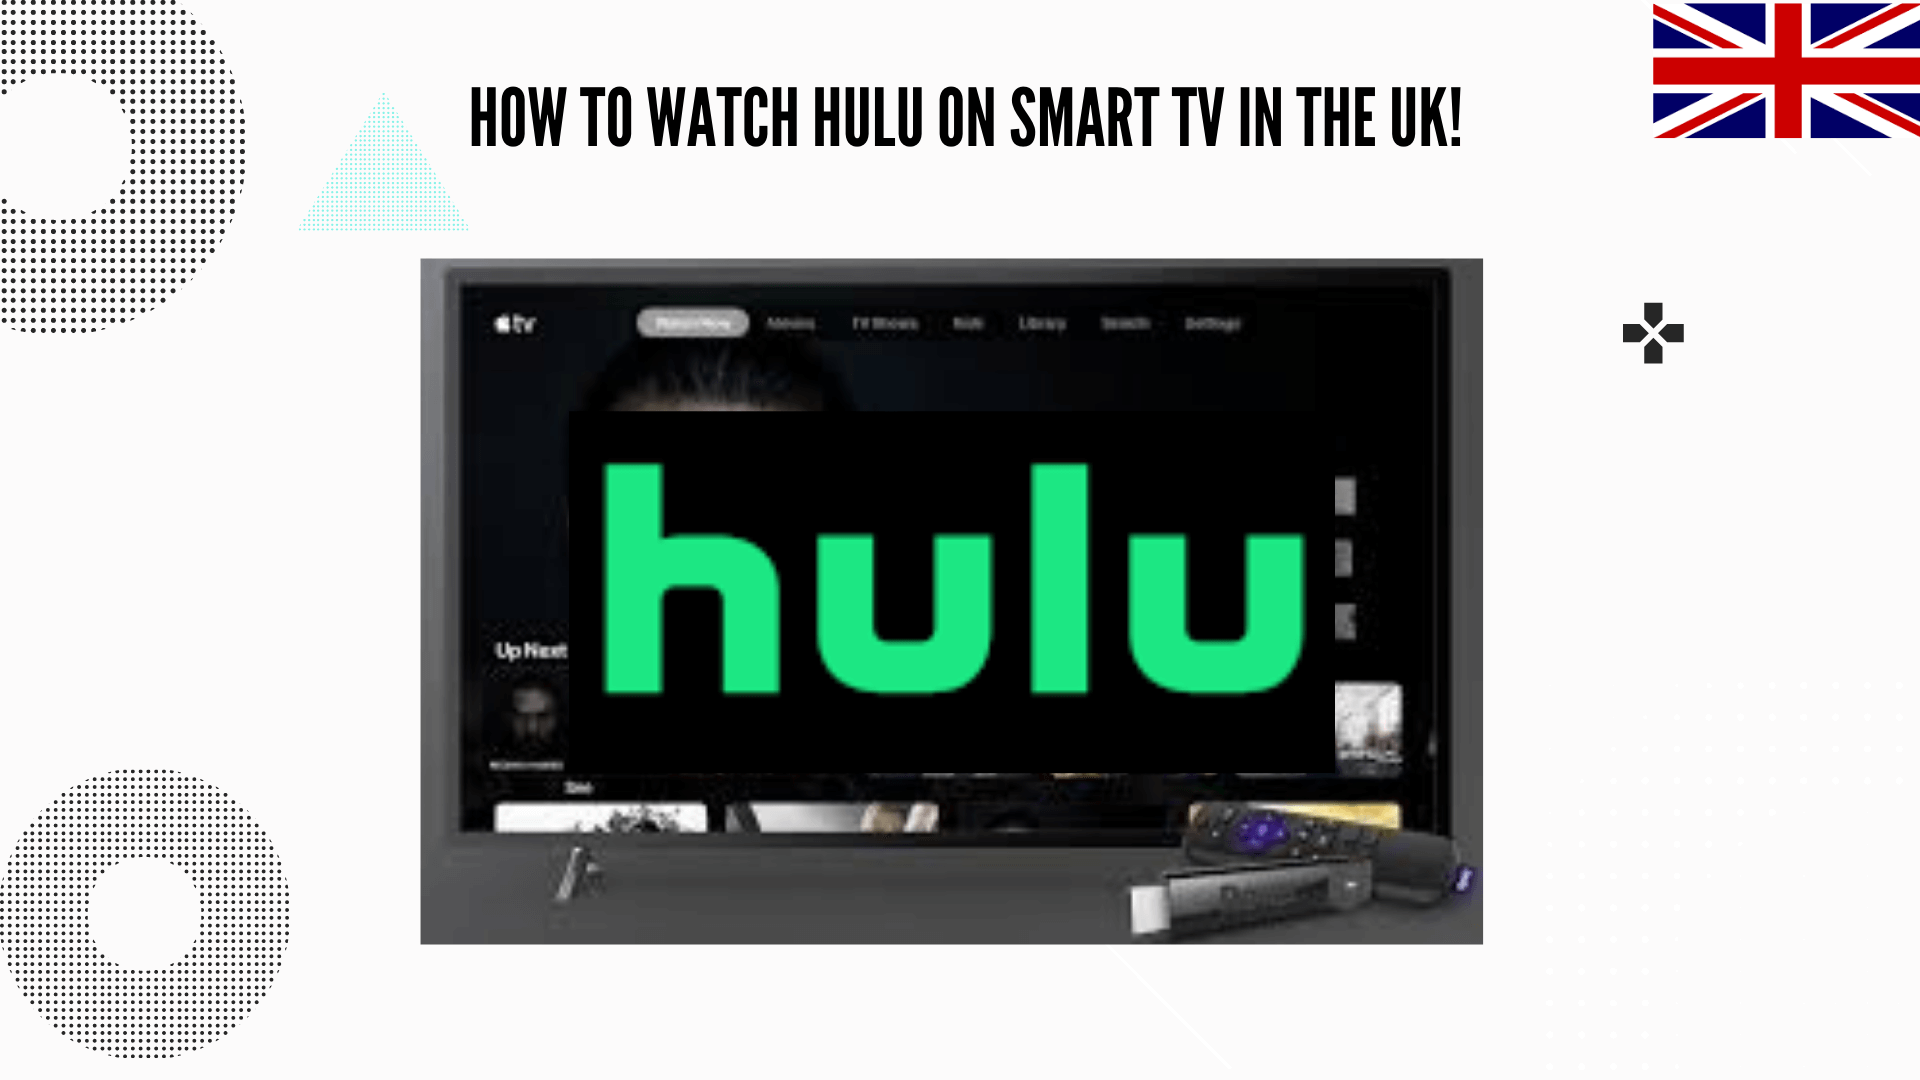 How to watch Hulu on Smart TV in the UK